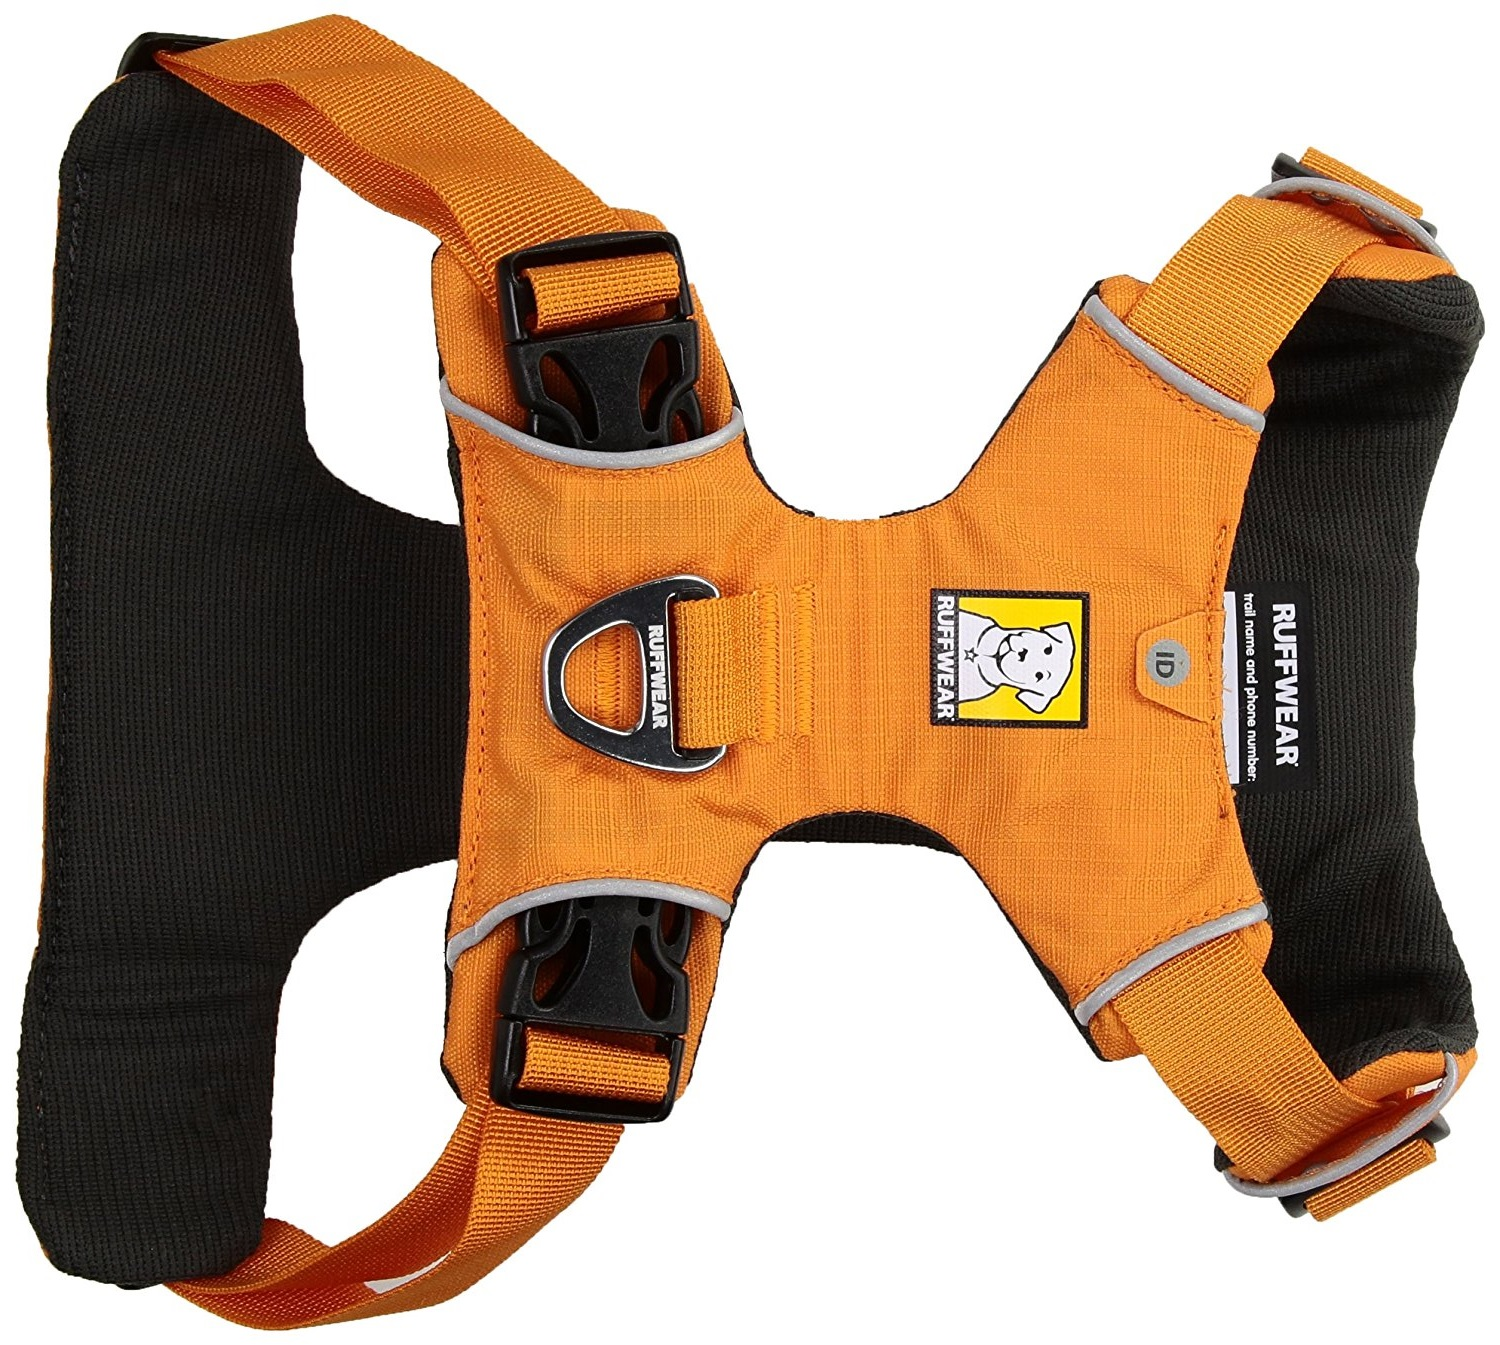 Best Dog Harness 2018 Keep Your In Control With The Wear On Market From Leads And Collars To Boots For Rough Terrain Snazzy Coats Winter Ruffware Front Range Is